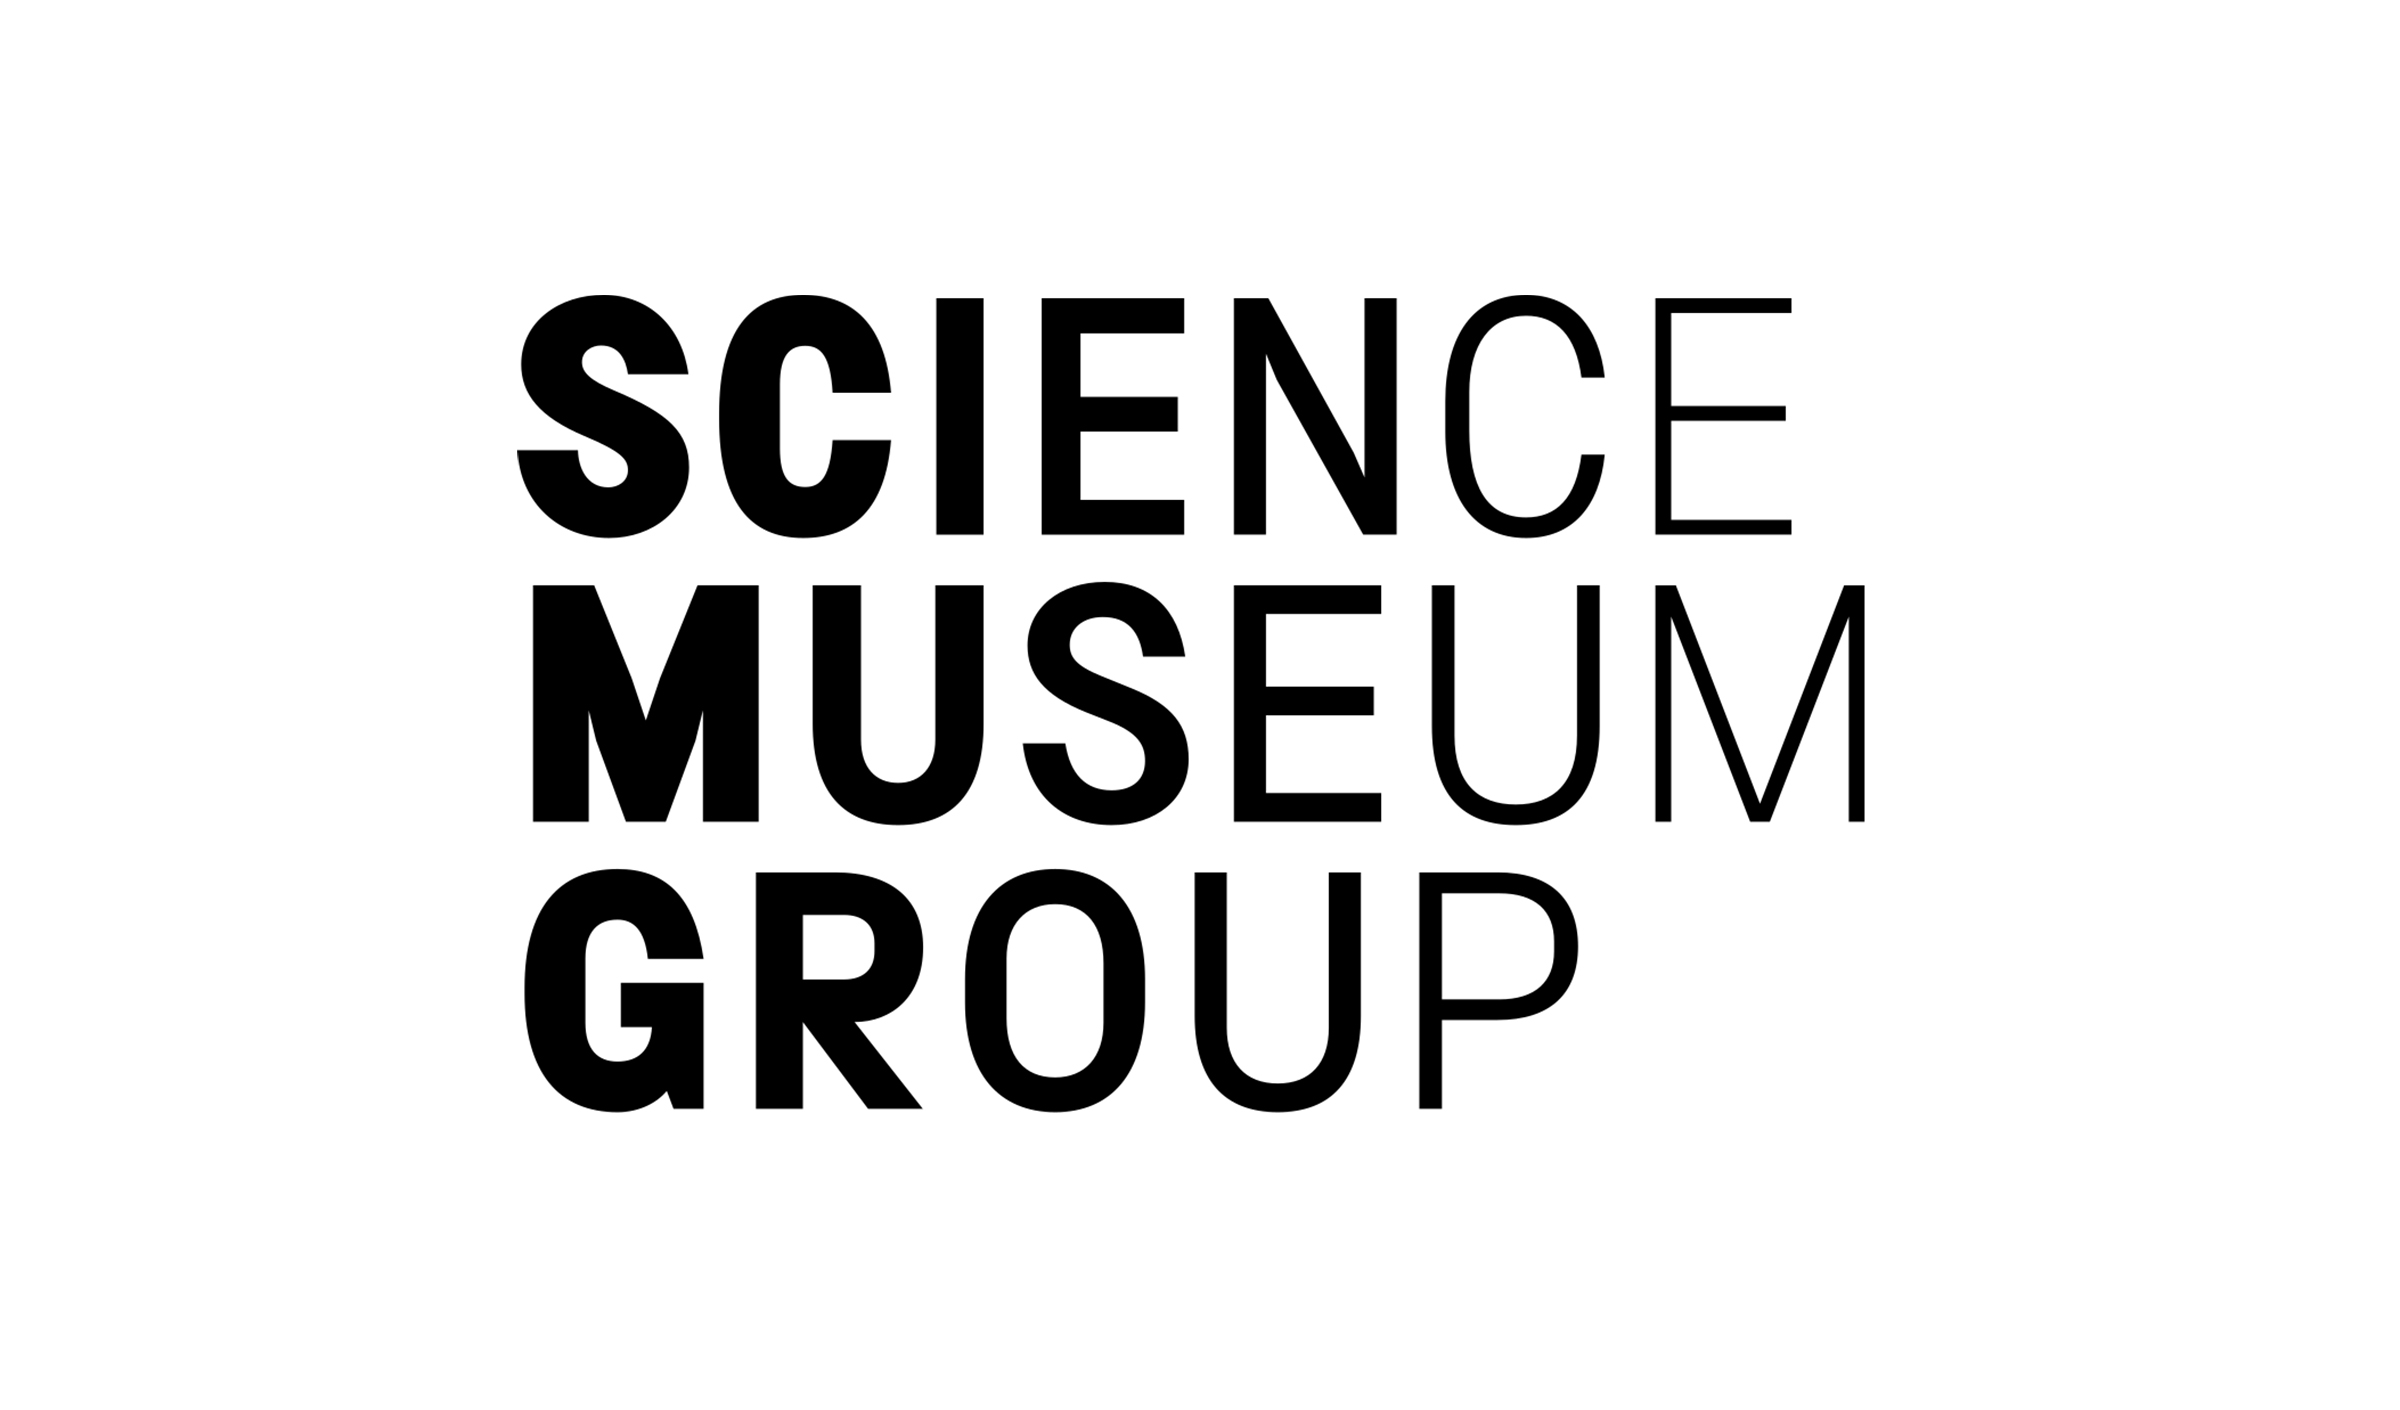 The Science Museum Group Academy